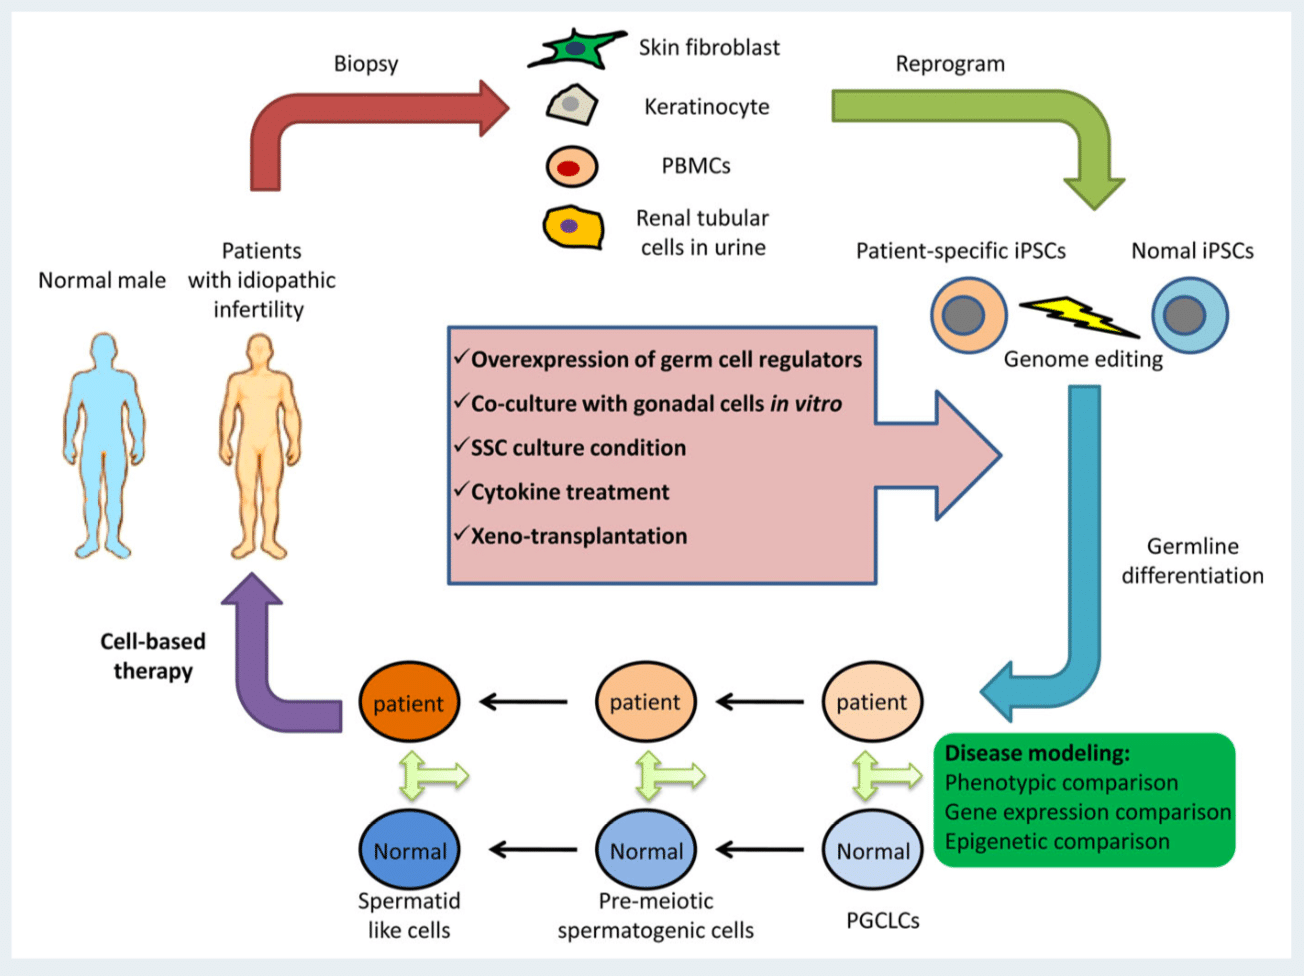 Human induced pluripotent stem cells and male infertility: an overview of current progress and perspectives.